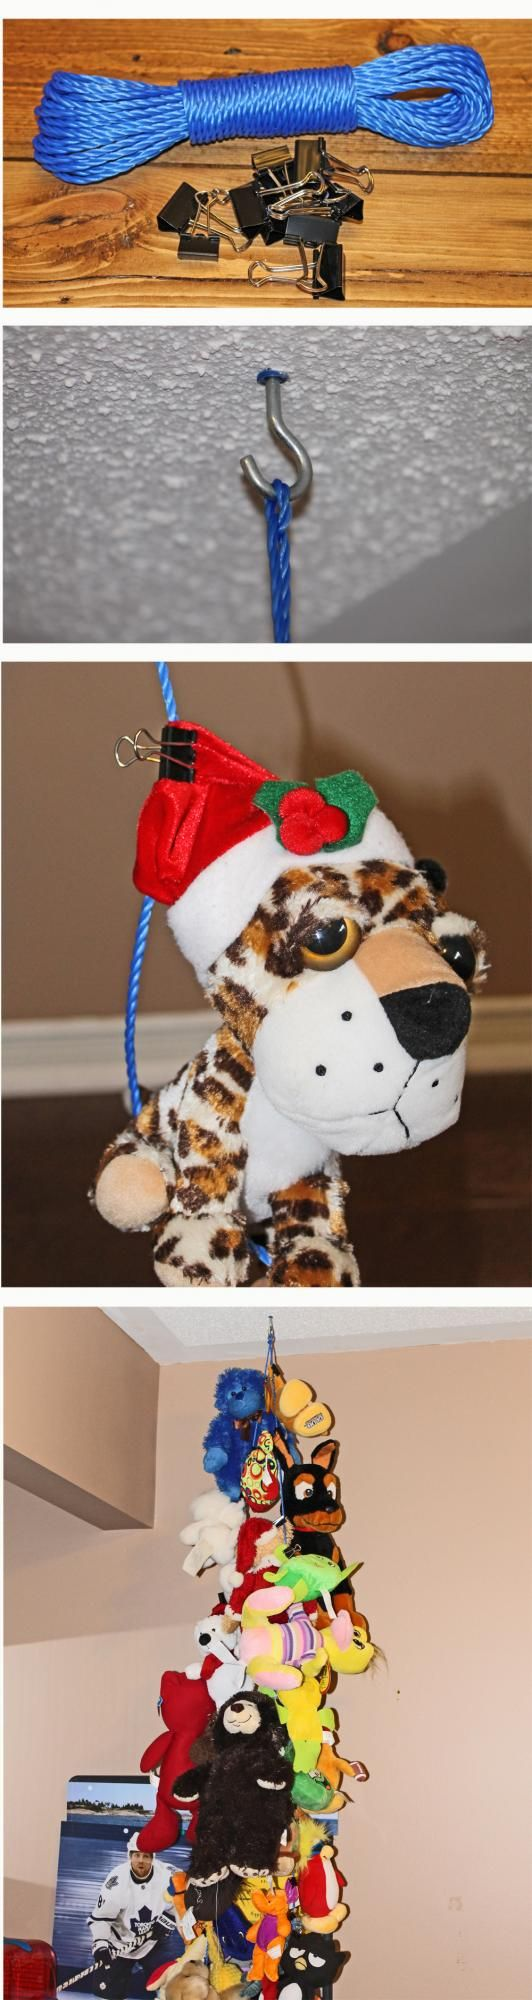 How To Organize Stuffed Animals I would tie the rope through the clips so the kids cant get them.